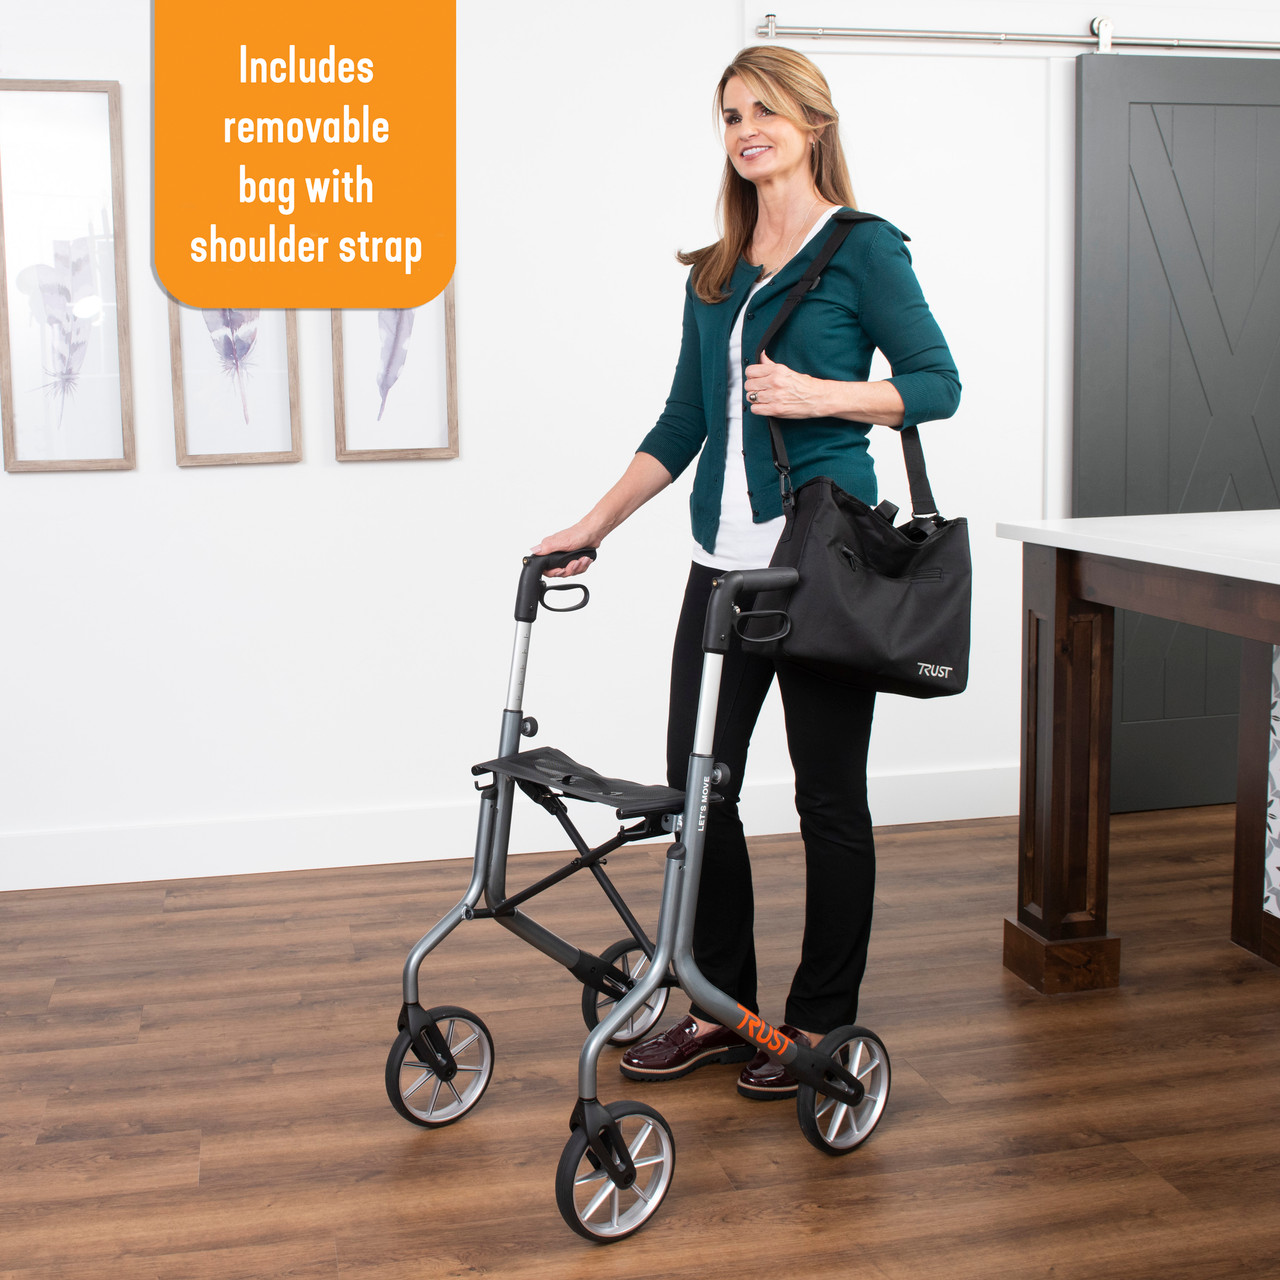 Let's Move Rollator  comes with a bag with a carry strap